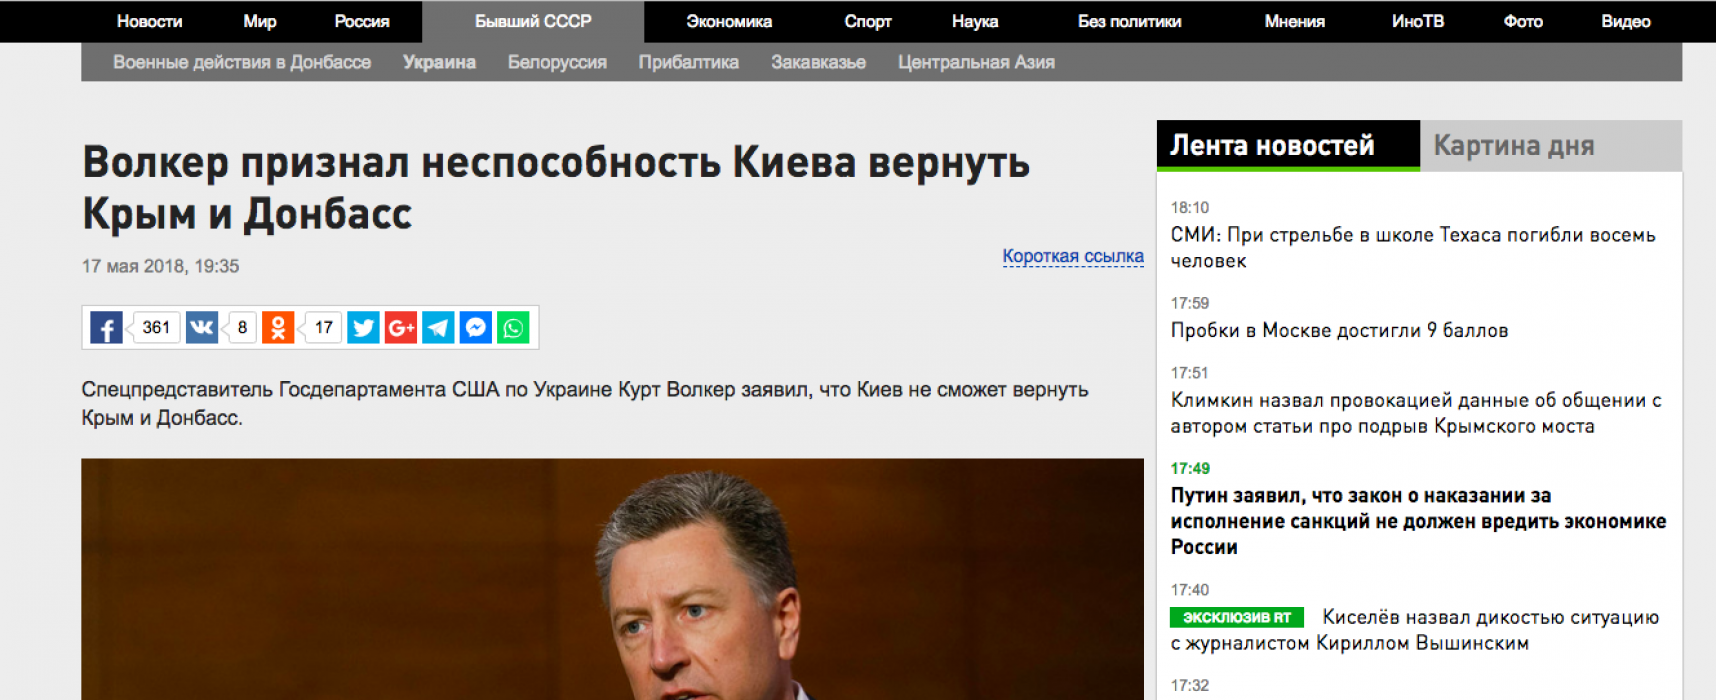 Fake: Kurt Volker Acknowledges Ukraine Unable to Return Crimea and Donbas